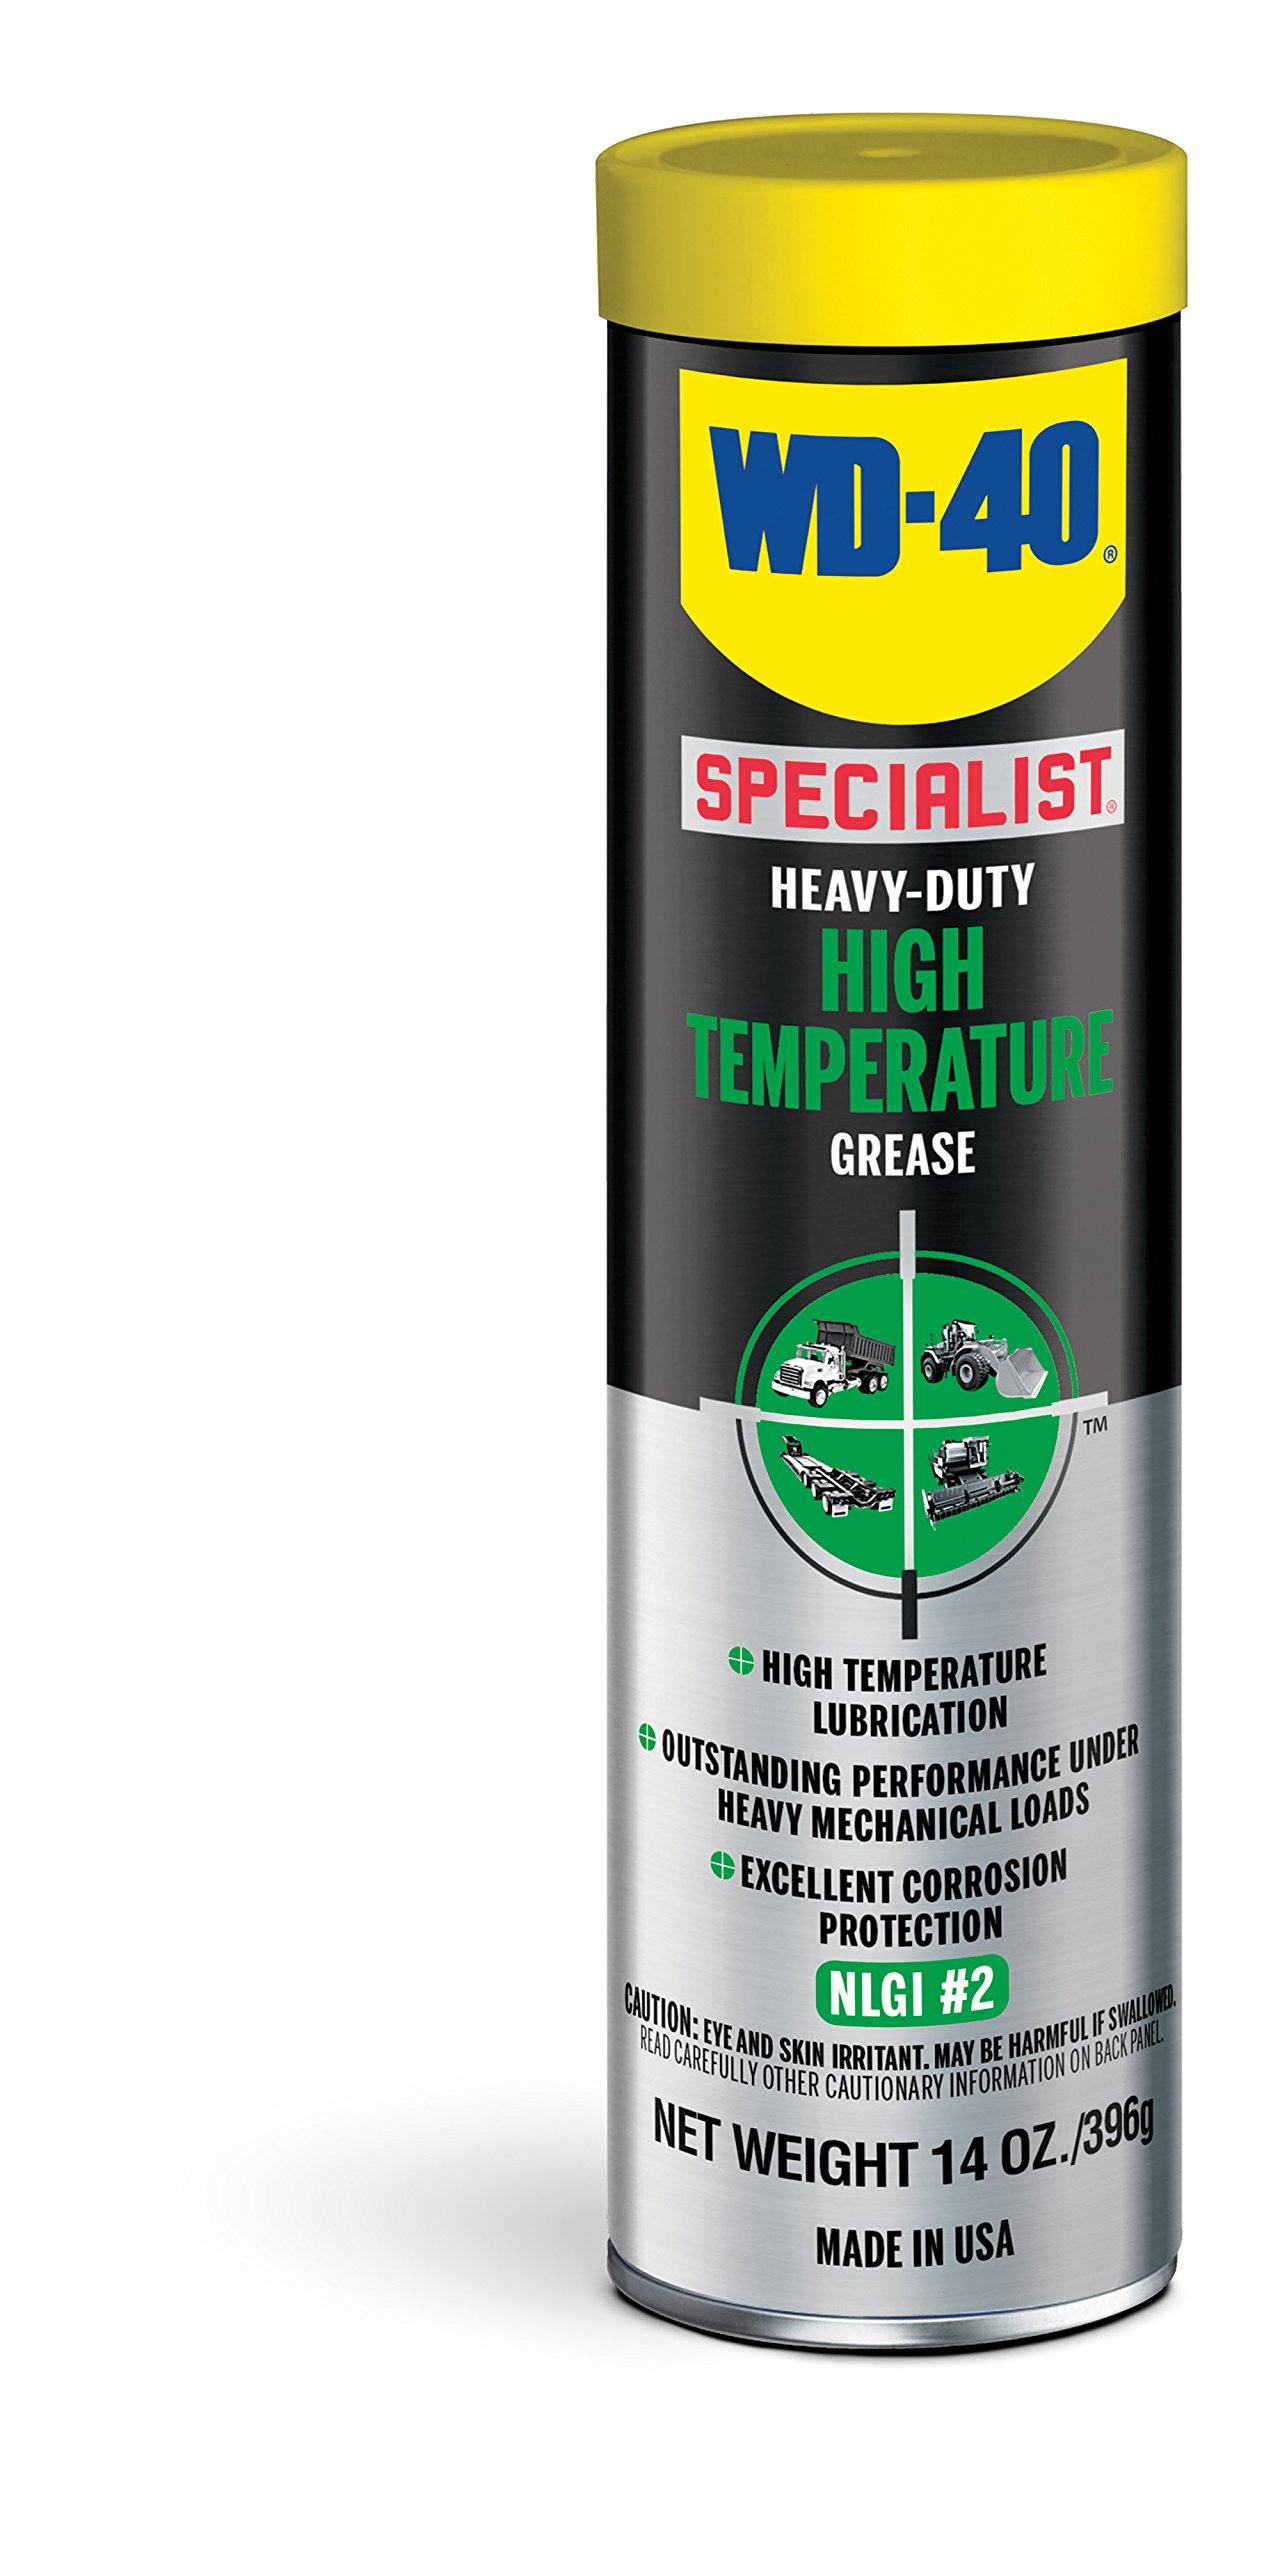 WD-40 Specialist Heavy-Duty High Temperature Grease, 14 OZ [10-Pack]